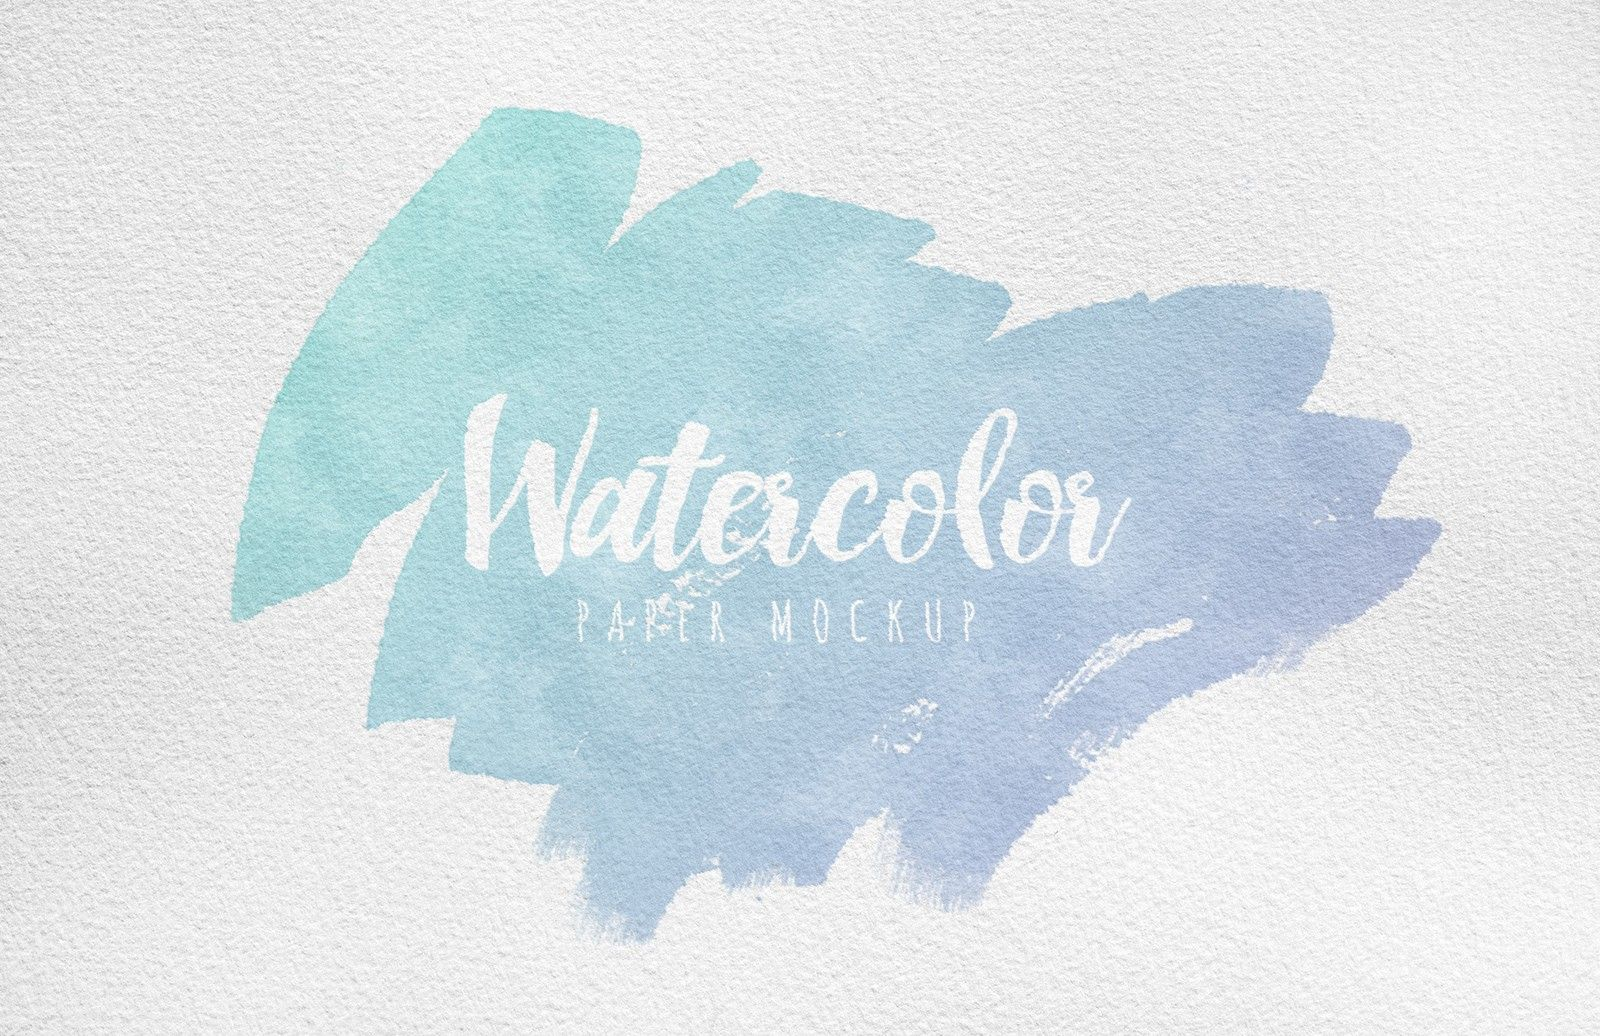 Watercolor Paper Mockup Watercolor Paper Watercolor Paper Design